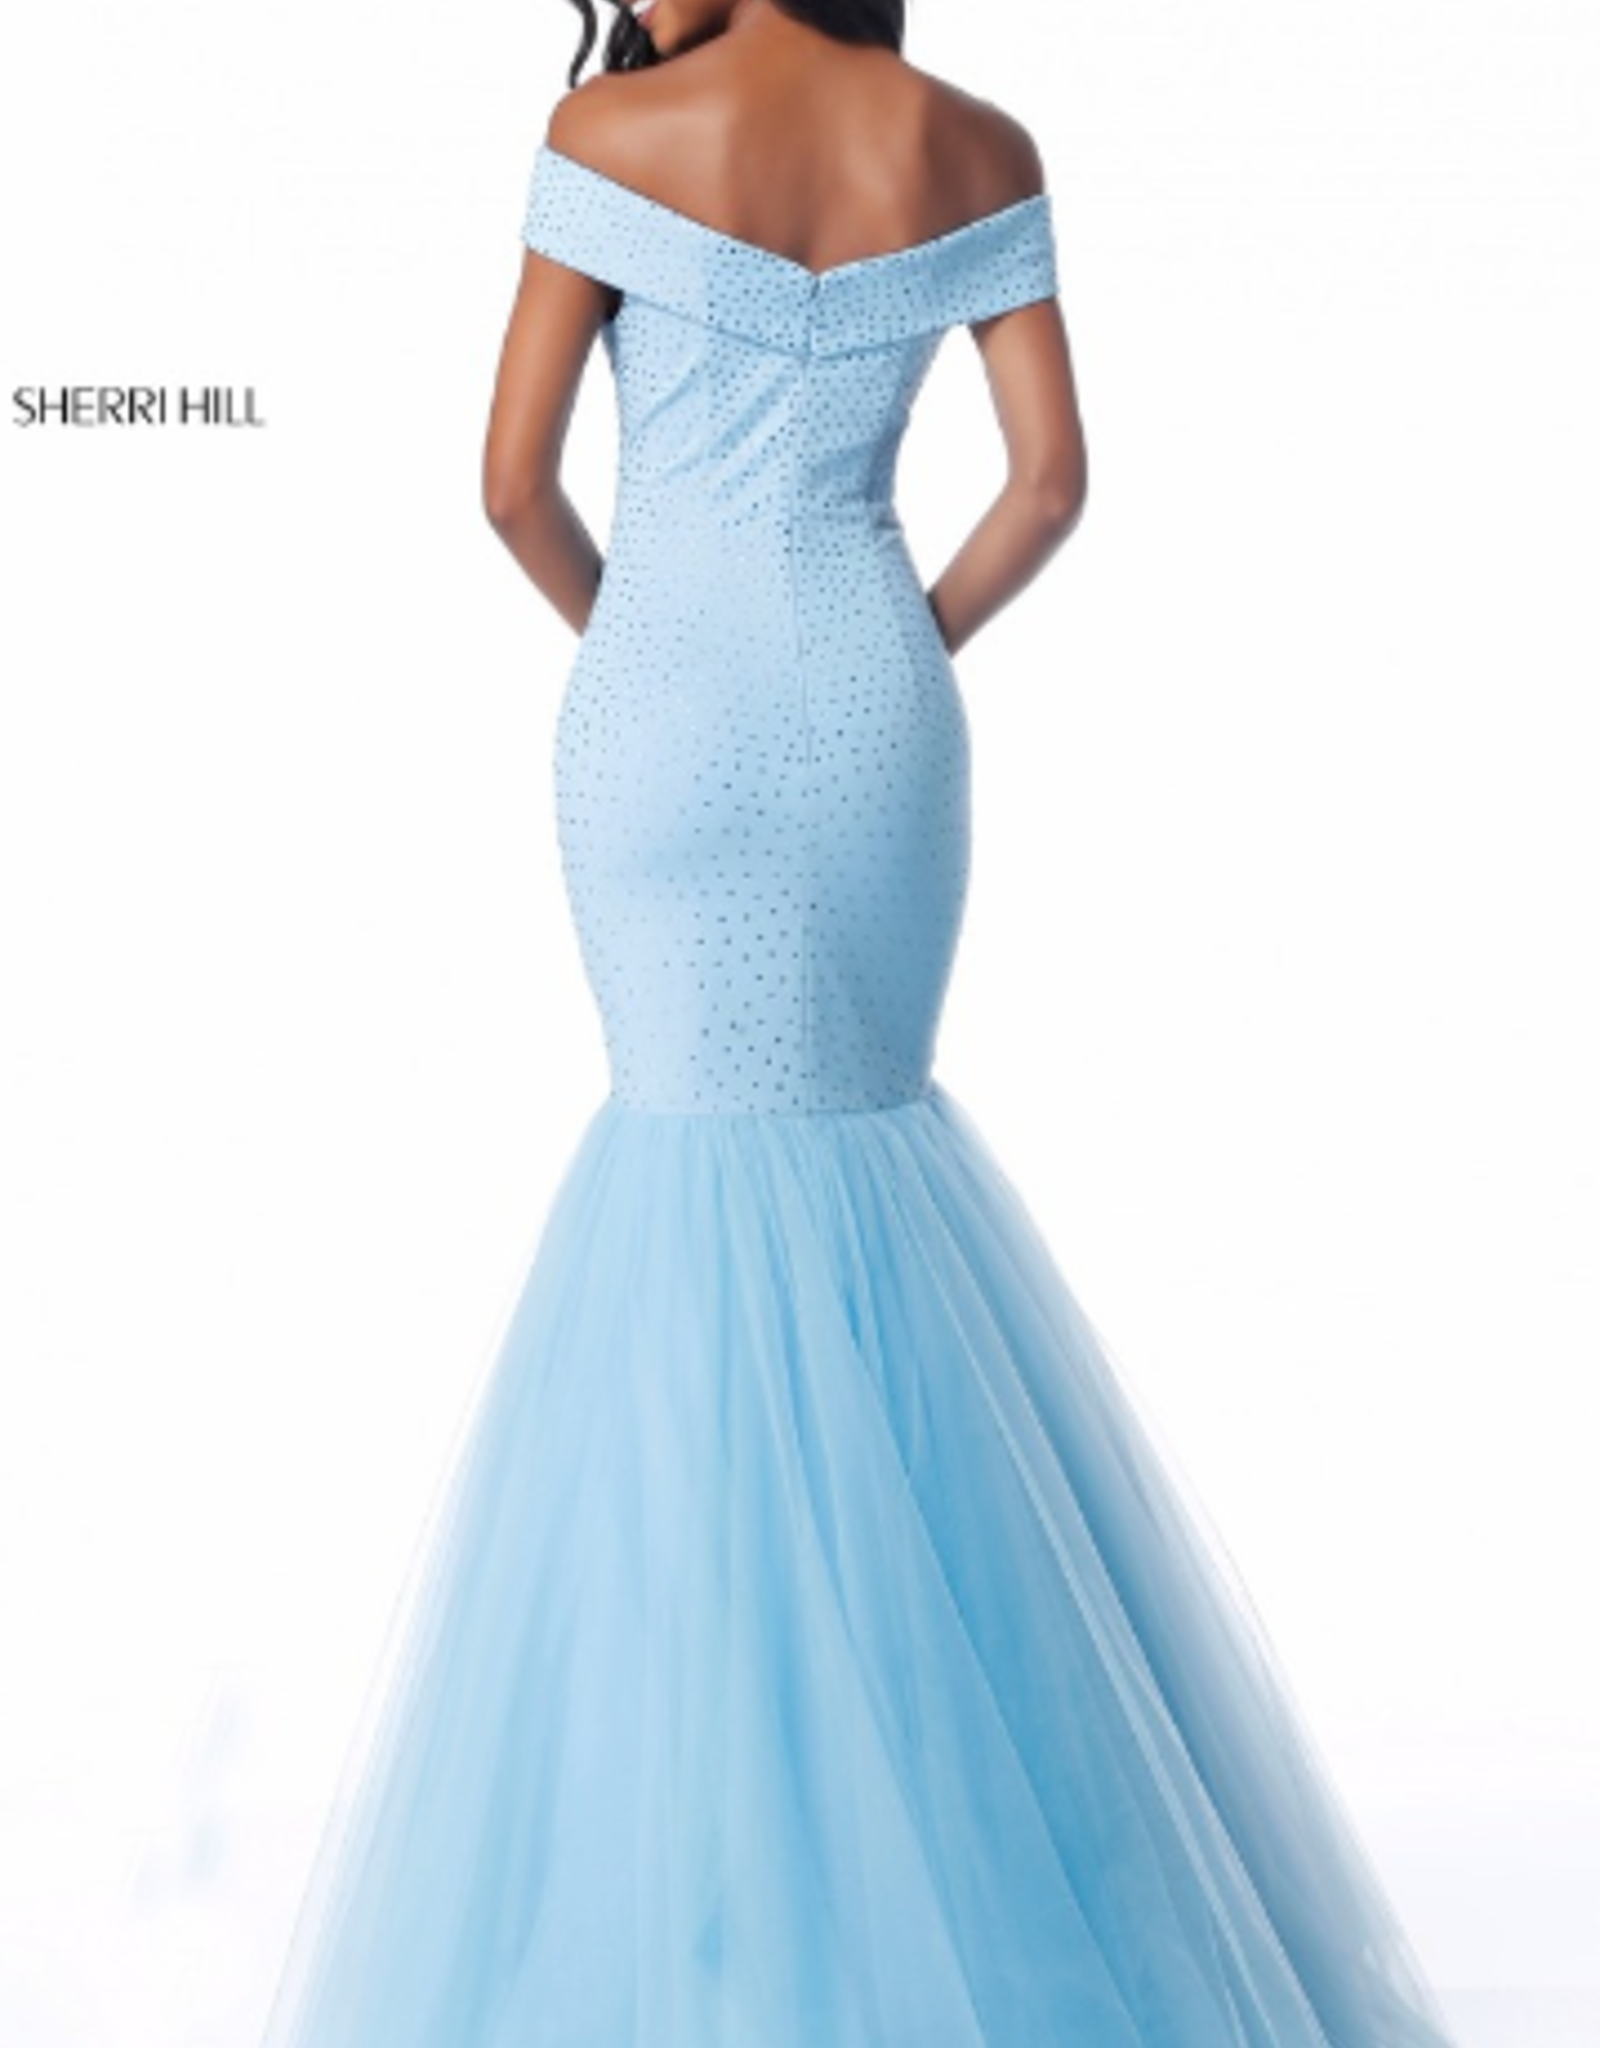 Sherri Hill sherri hill light blue 6